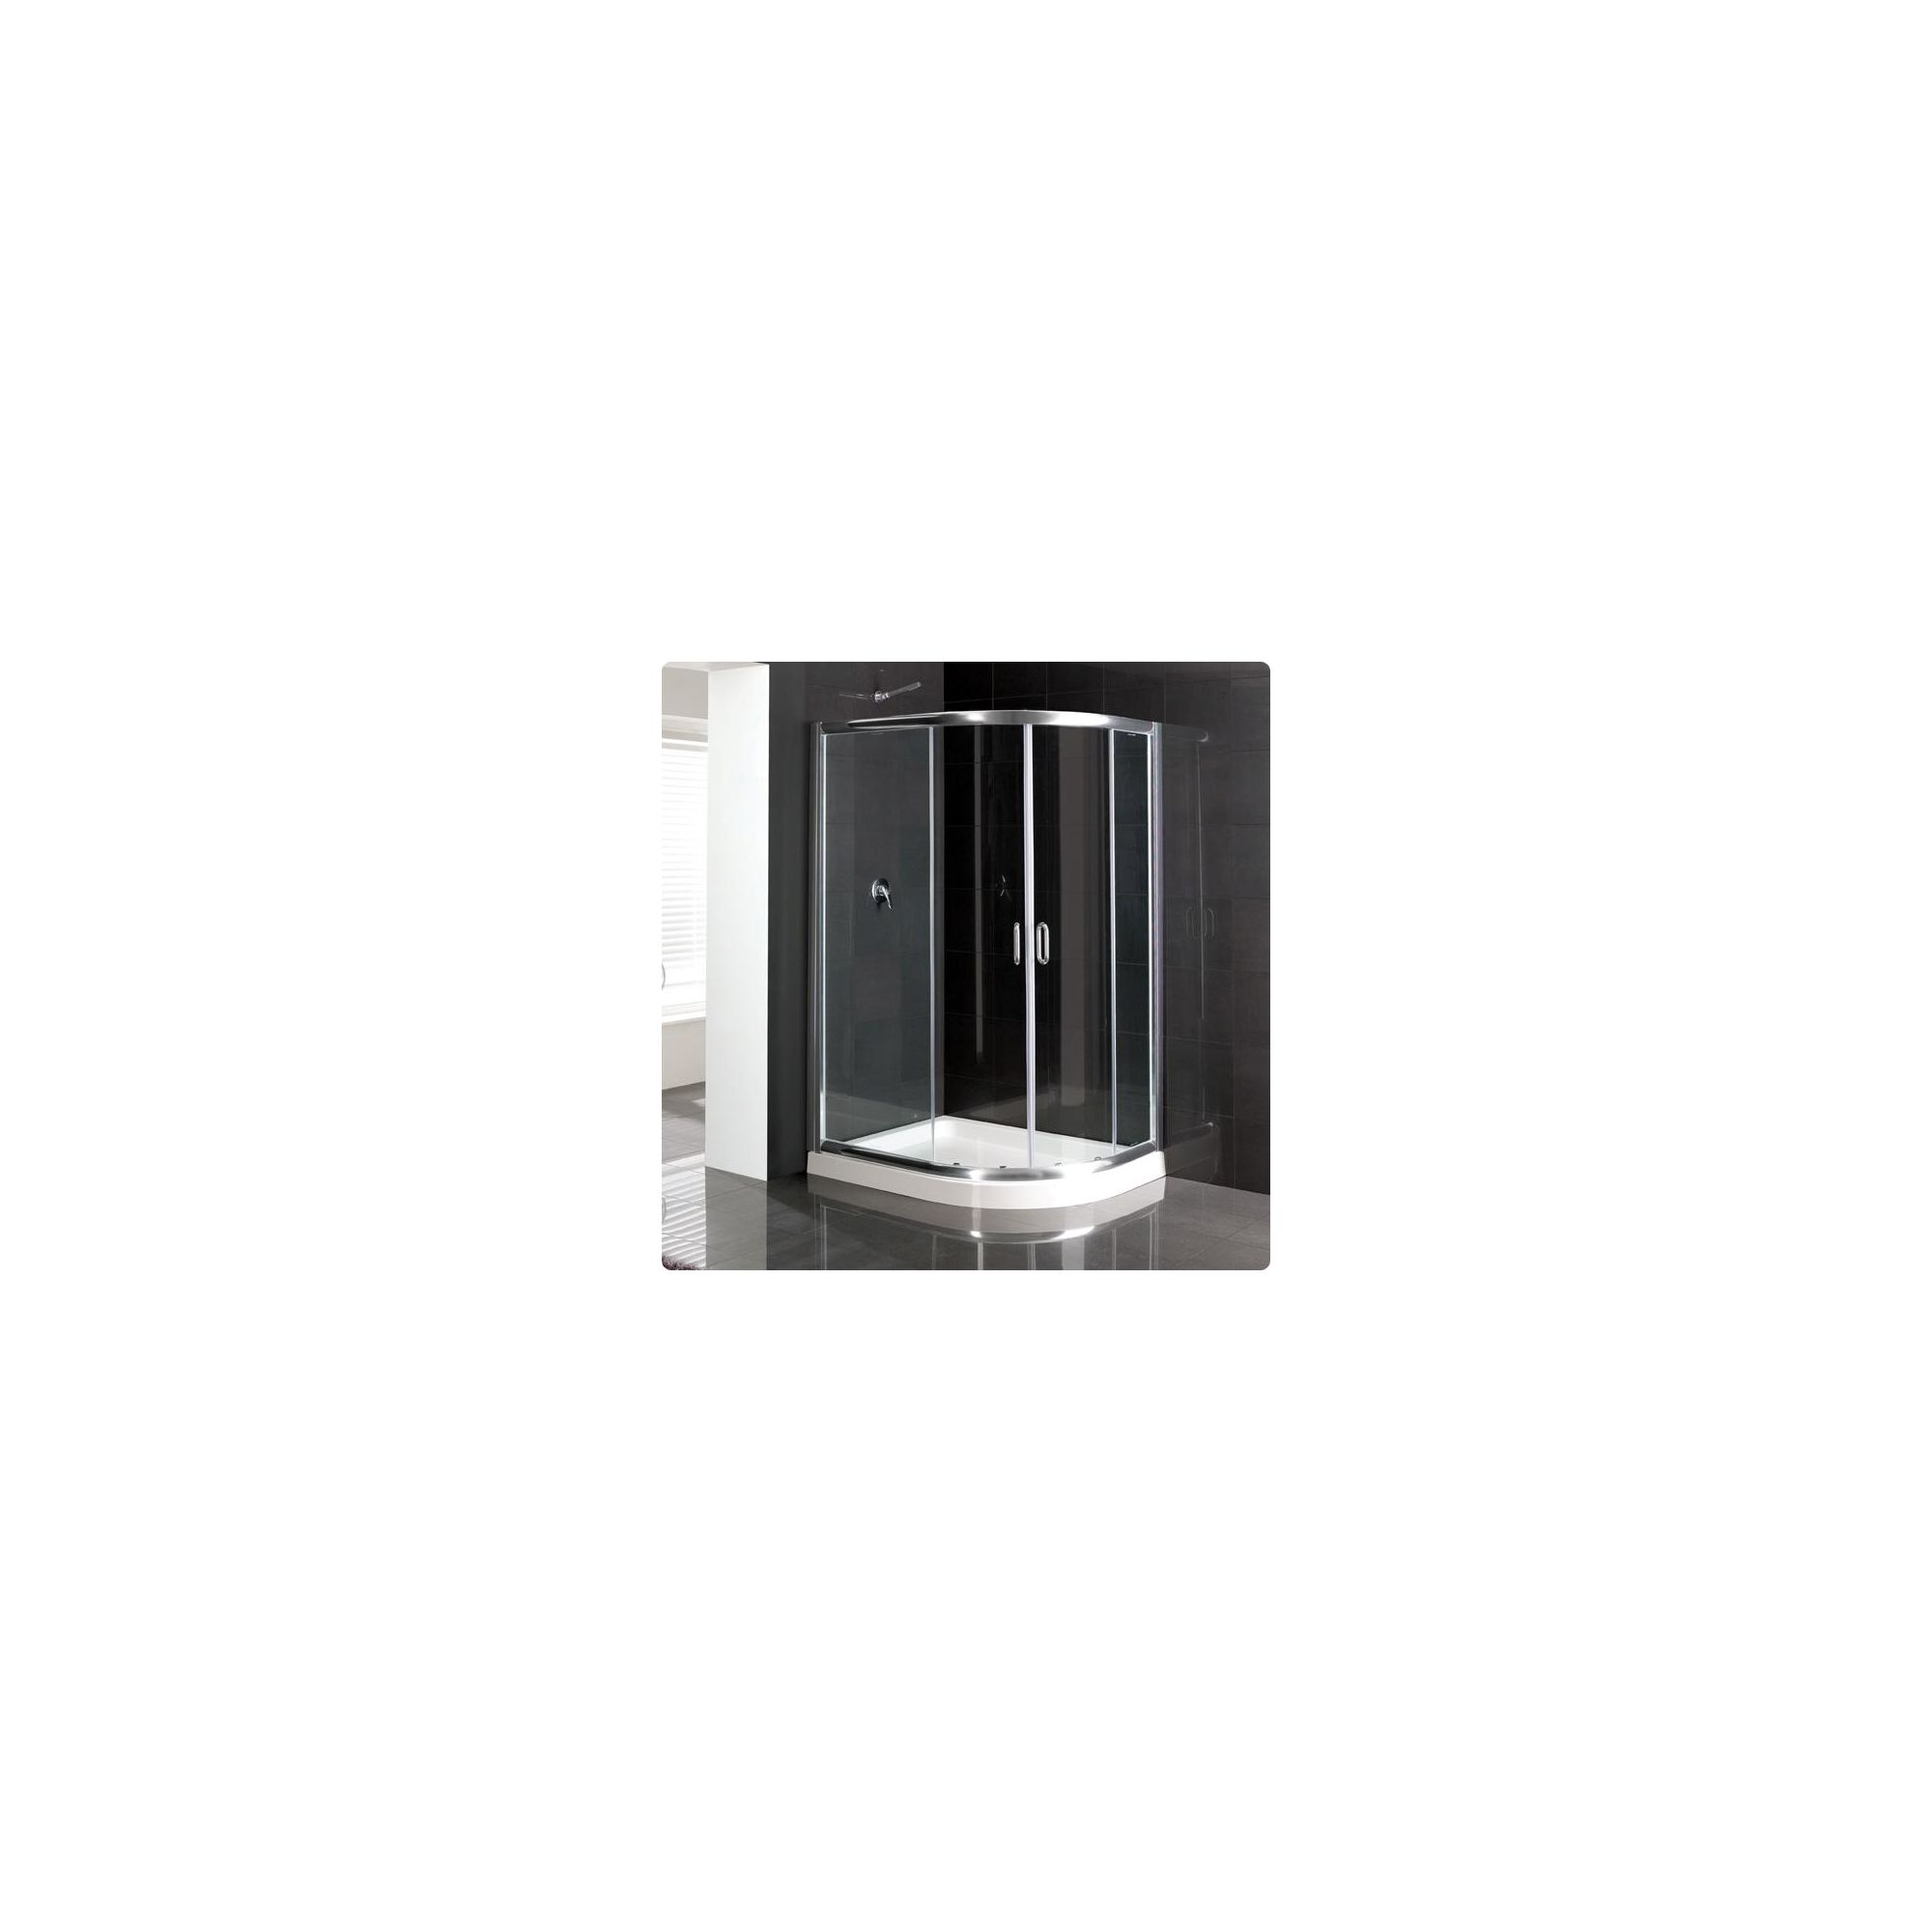 Duchy Elite Silver Offset Quadrant Shower Enclosure (Complete with Tray) 1000mm x 760mm, 6mm Glass at Tesco Direct